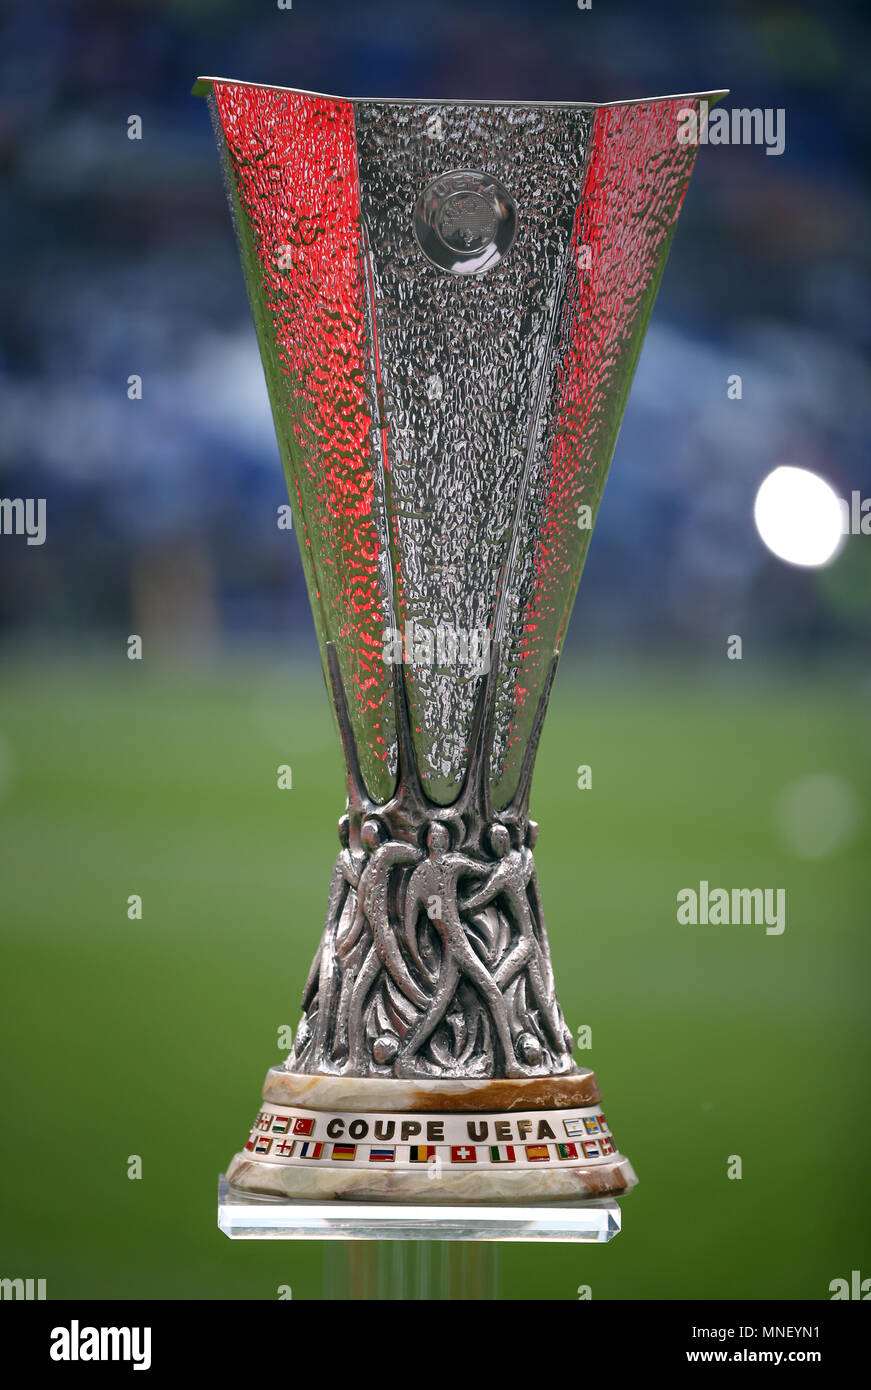 the uefa europa league trophy on display during the uefa europa league final at parc olympique lyonnais lyon press association photo picture date wednesday may 16 2018 see pa story soccer final https www alamy com the uefa europa league trophy on display during the uefa europa league final at parc olympique lyonnais lyon press association photo picture date wednesday may 16 2018 see pa story soccer final photo credit should read nick pottspa wire image185340541 html